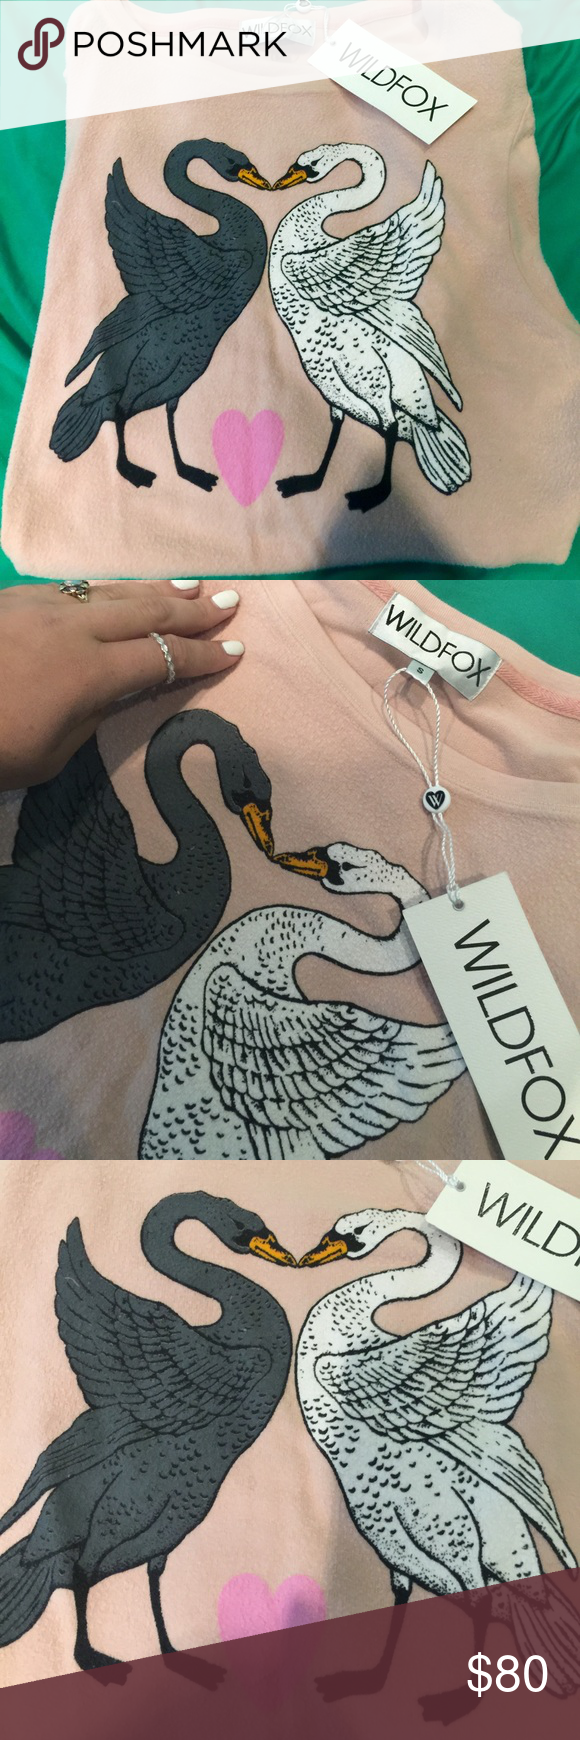 Wildfox Swan's Kissing Baggy Beach Jumper Adorable Wildfox baggy beach jumper. So soft never worn just tried on. Downsizing my Wildfox collection because I have too much and I'm a broke college student. Size small but can fit medium depending on desired fit Wildfox Sweaters